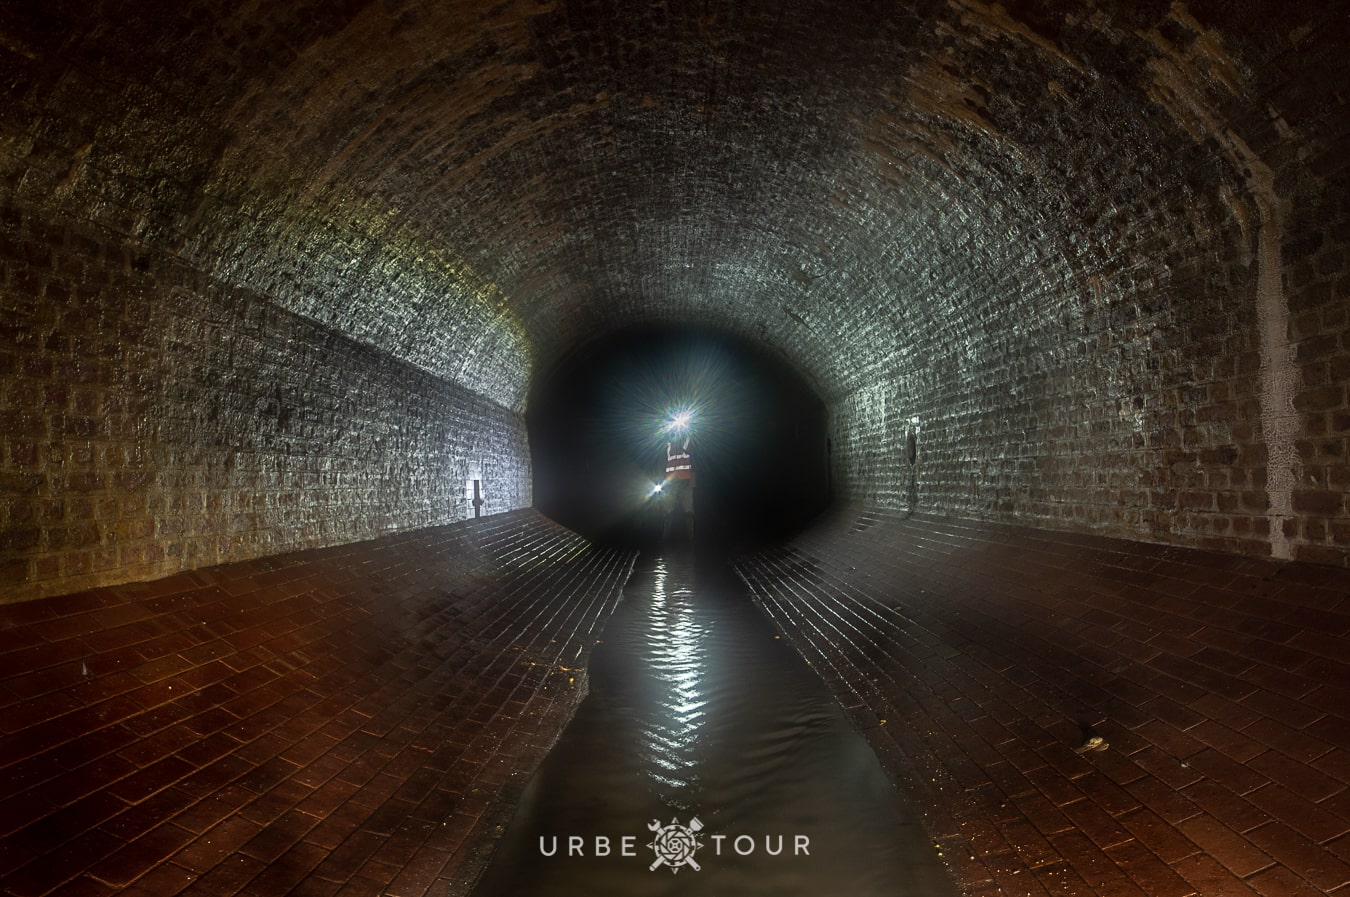 historycal brick tunnels under london